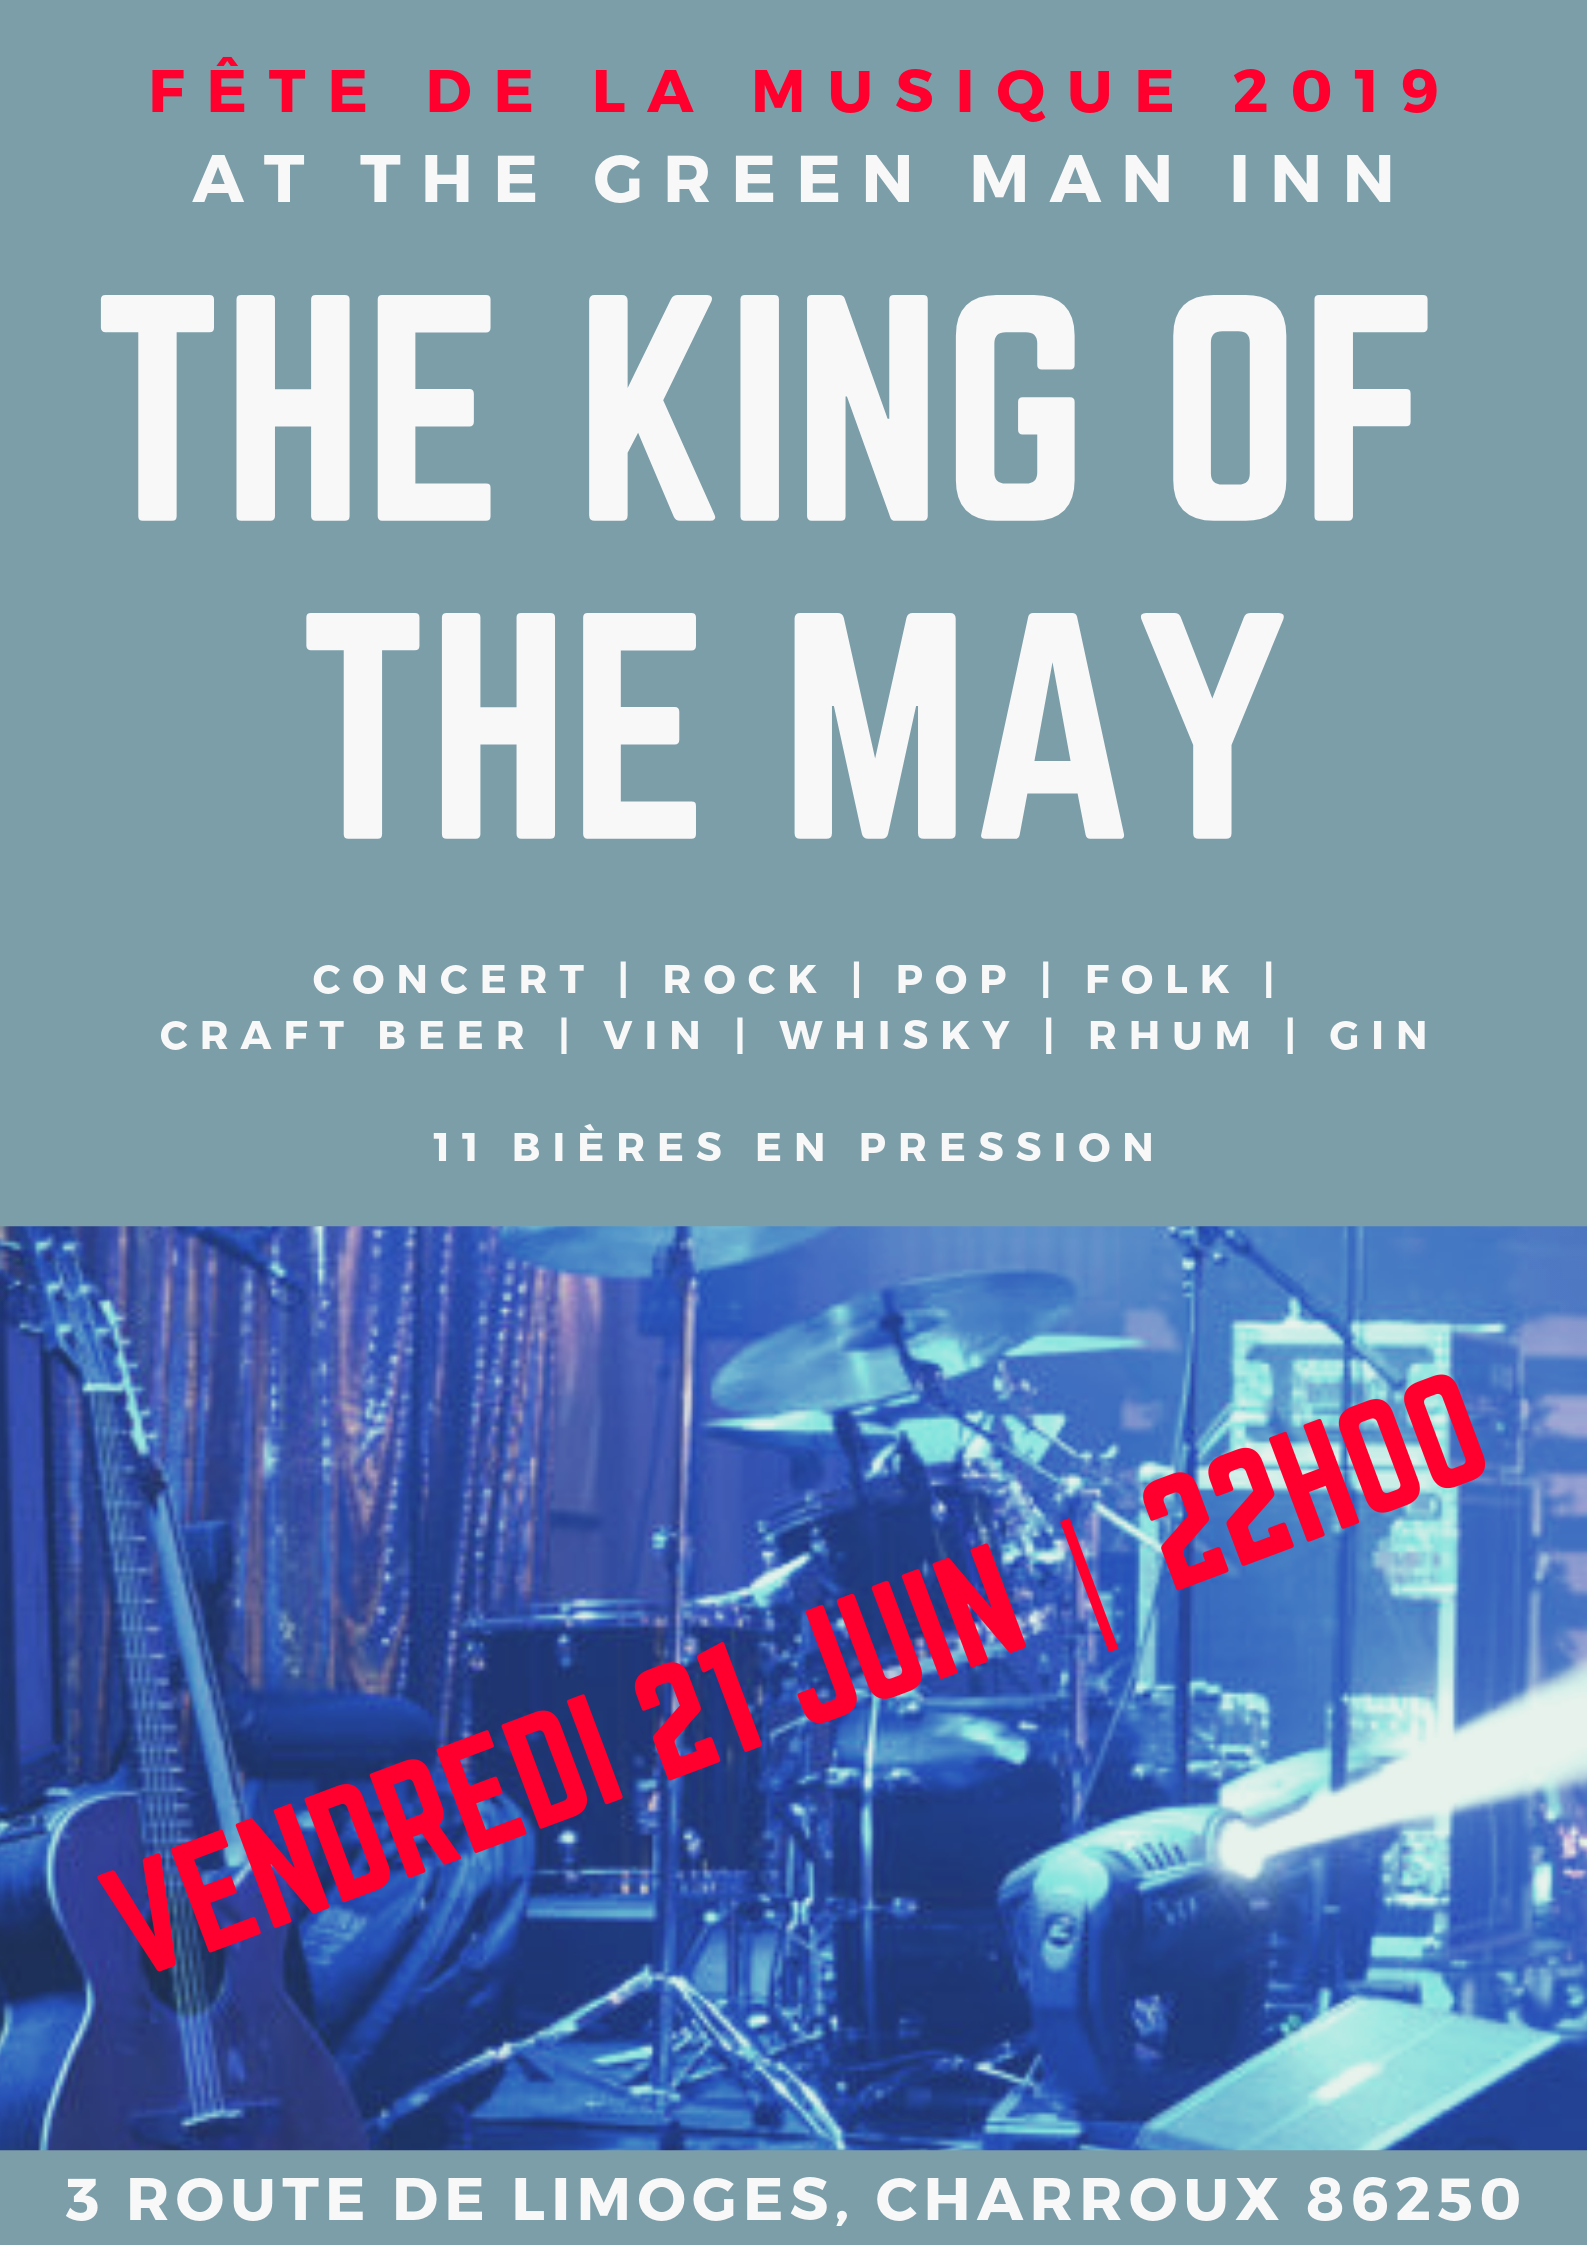 The King of the may